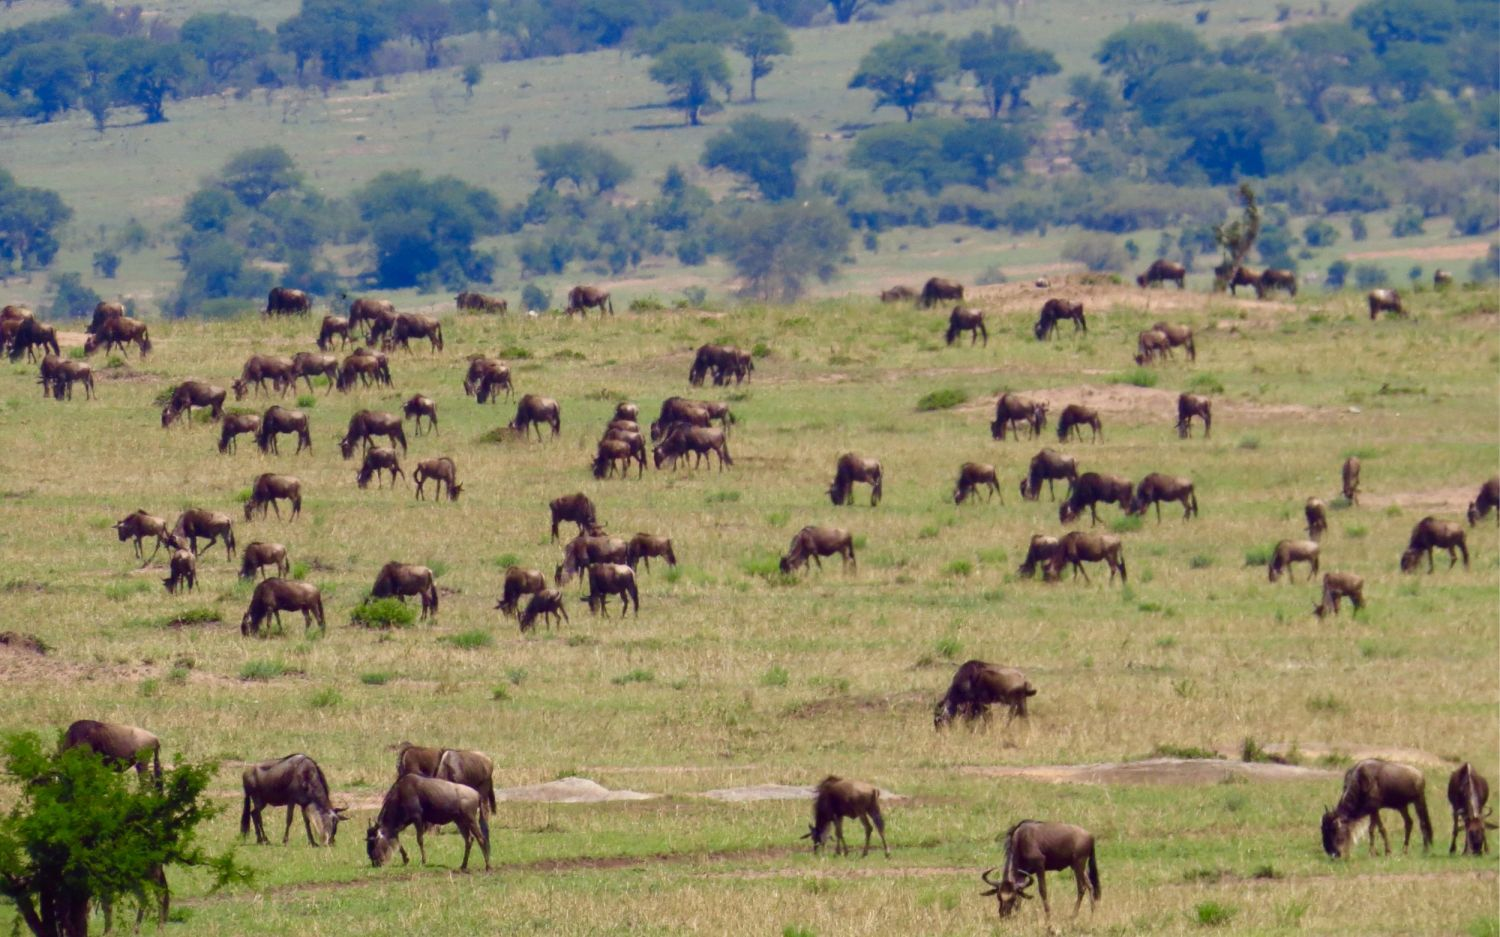 Wildebeest and zebra were everywhere, feeding on the new green shoots of grass